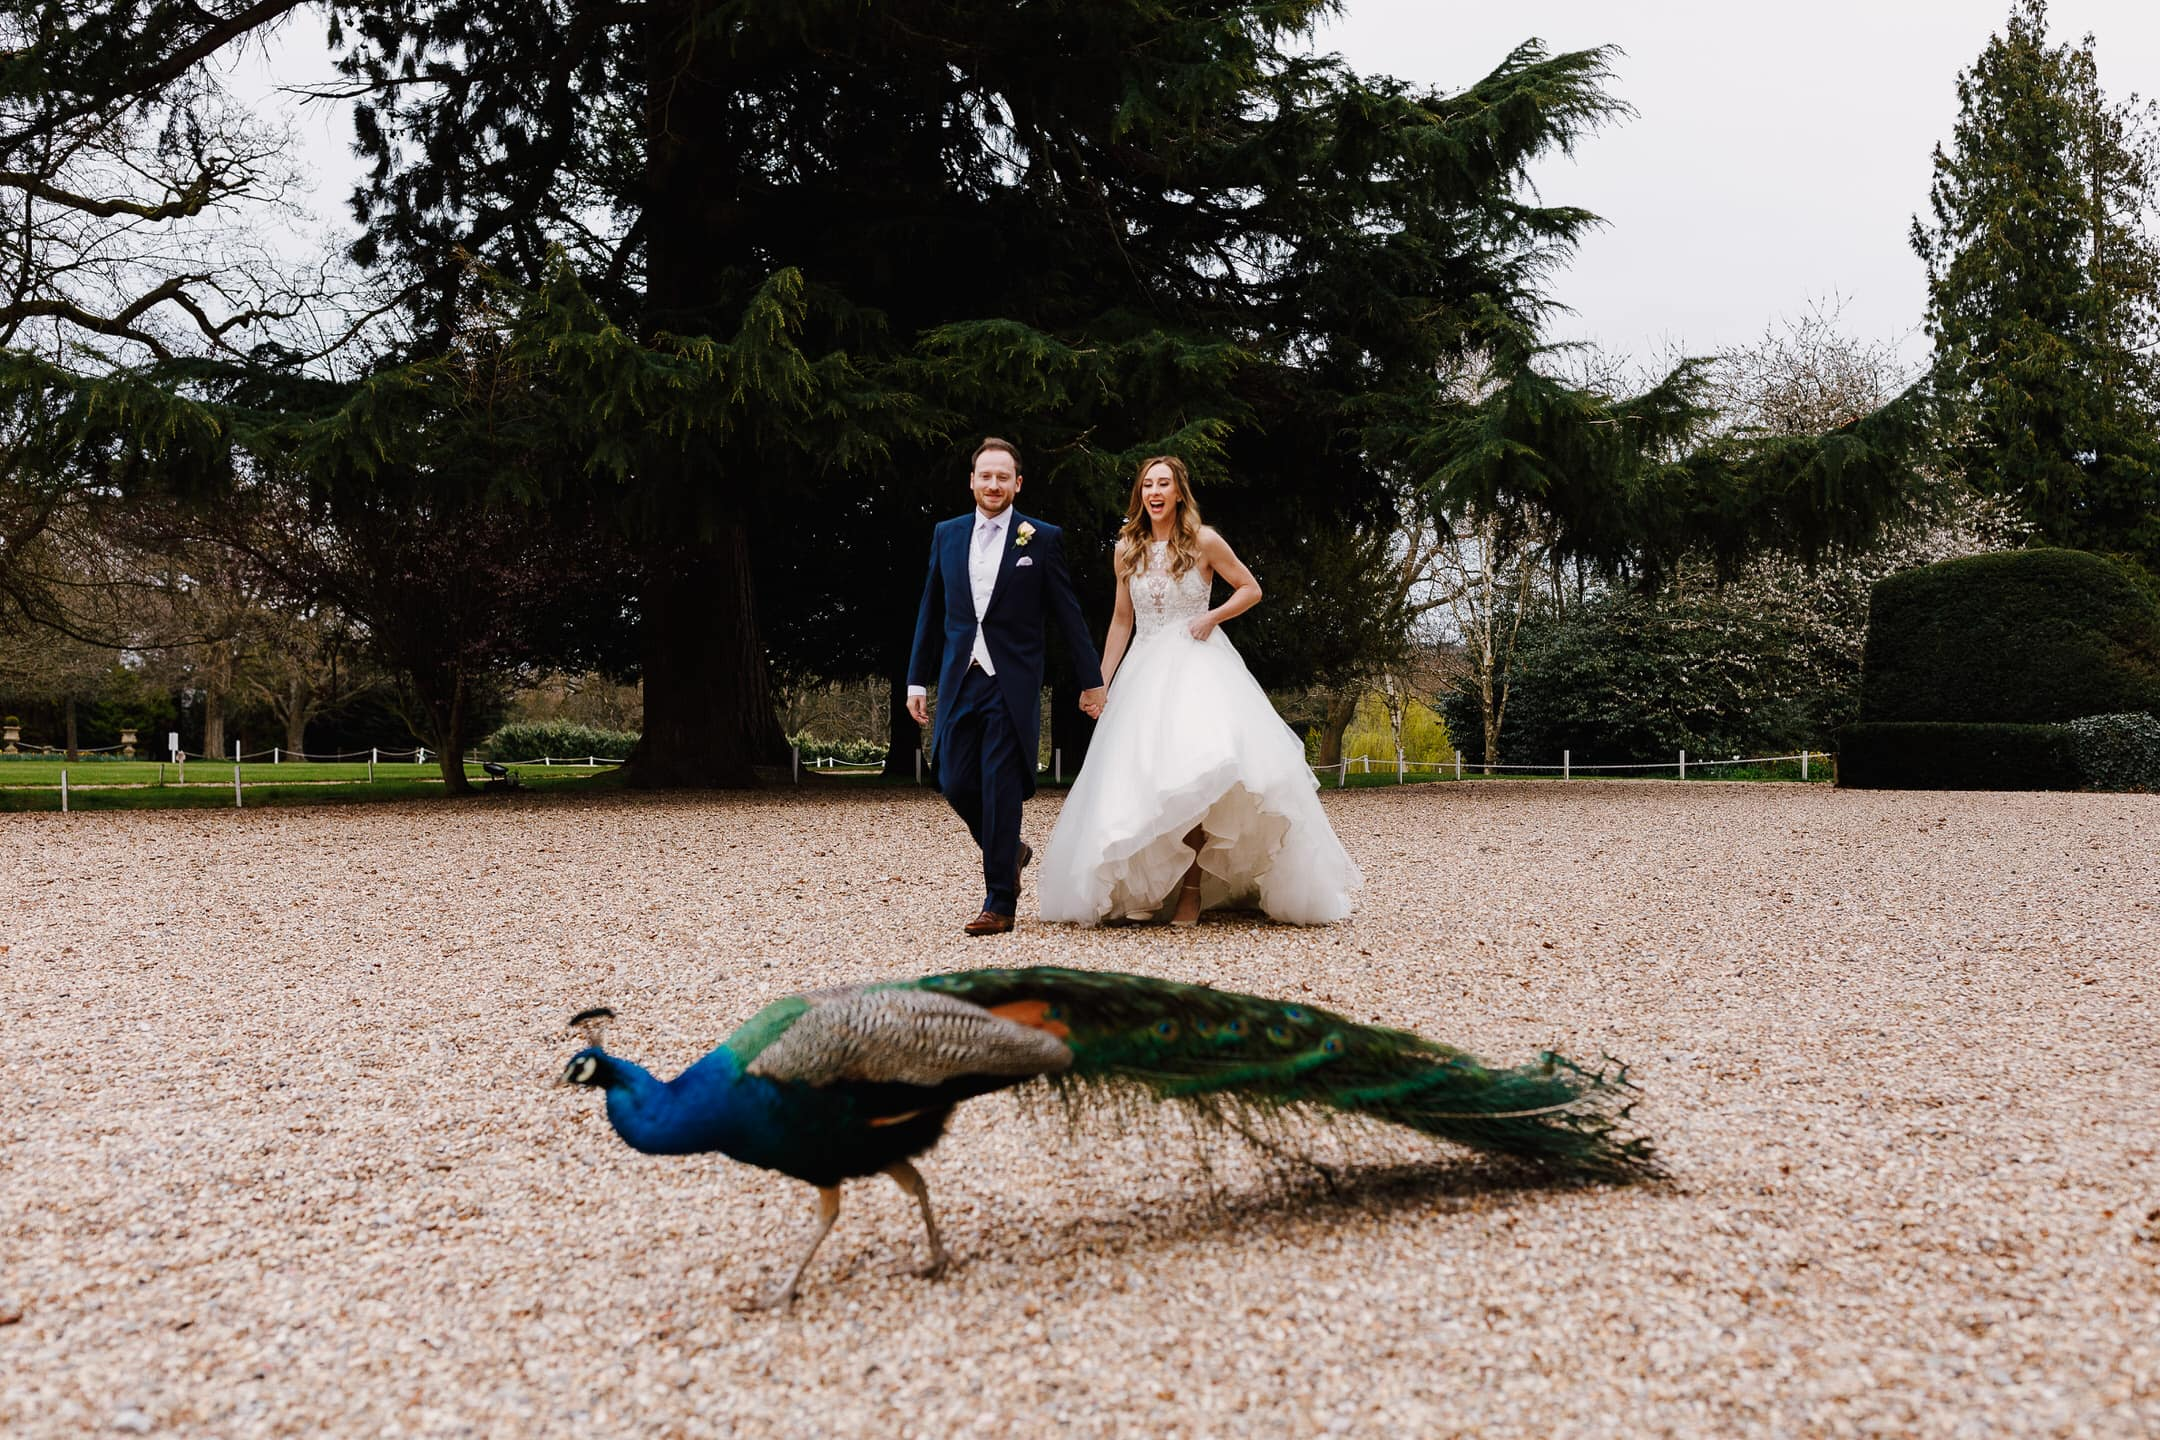 Northbrook Park Wedding Photographer – Nicola & James